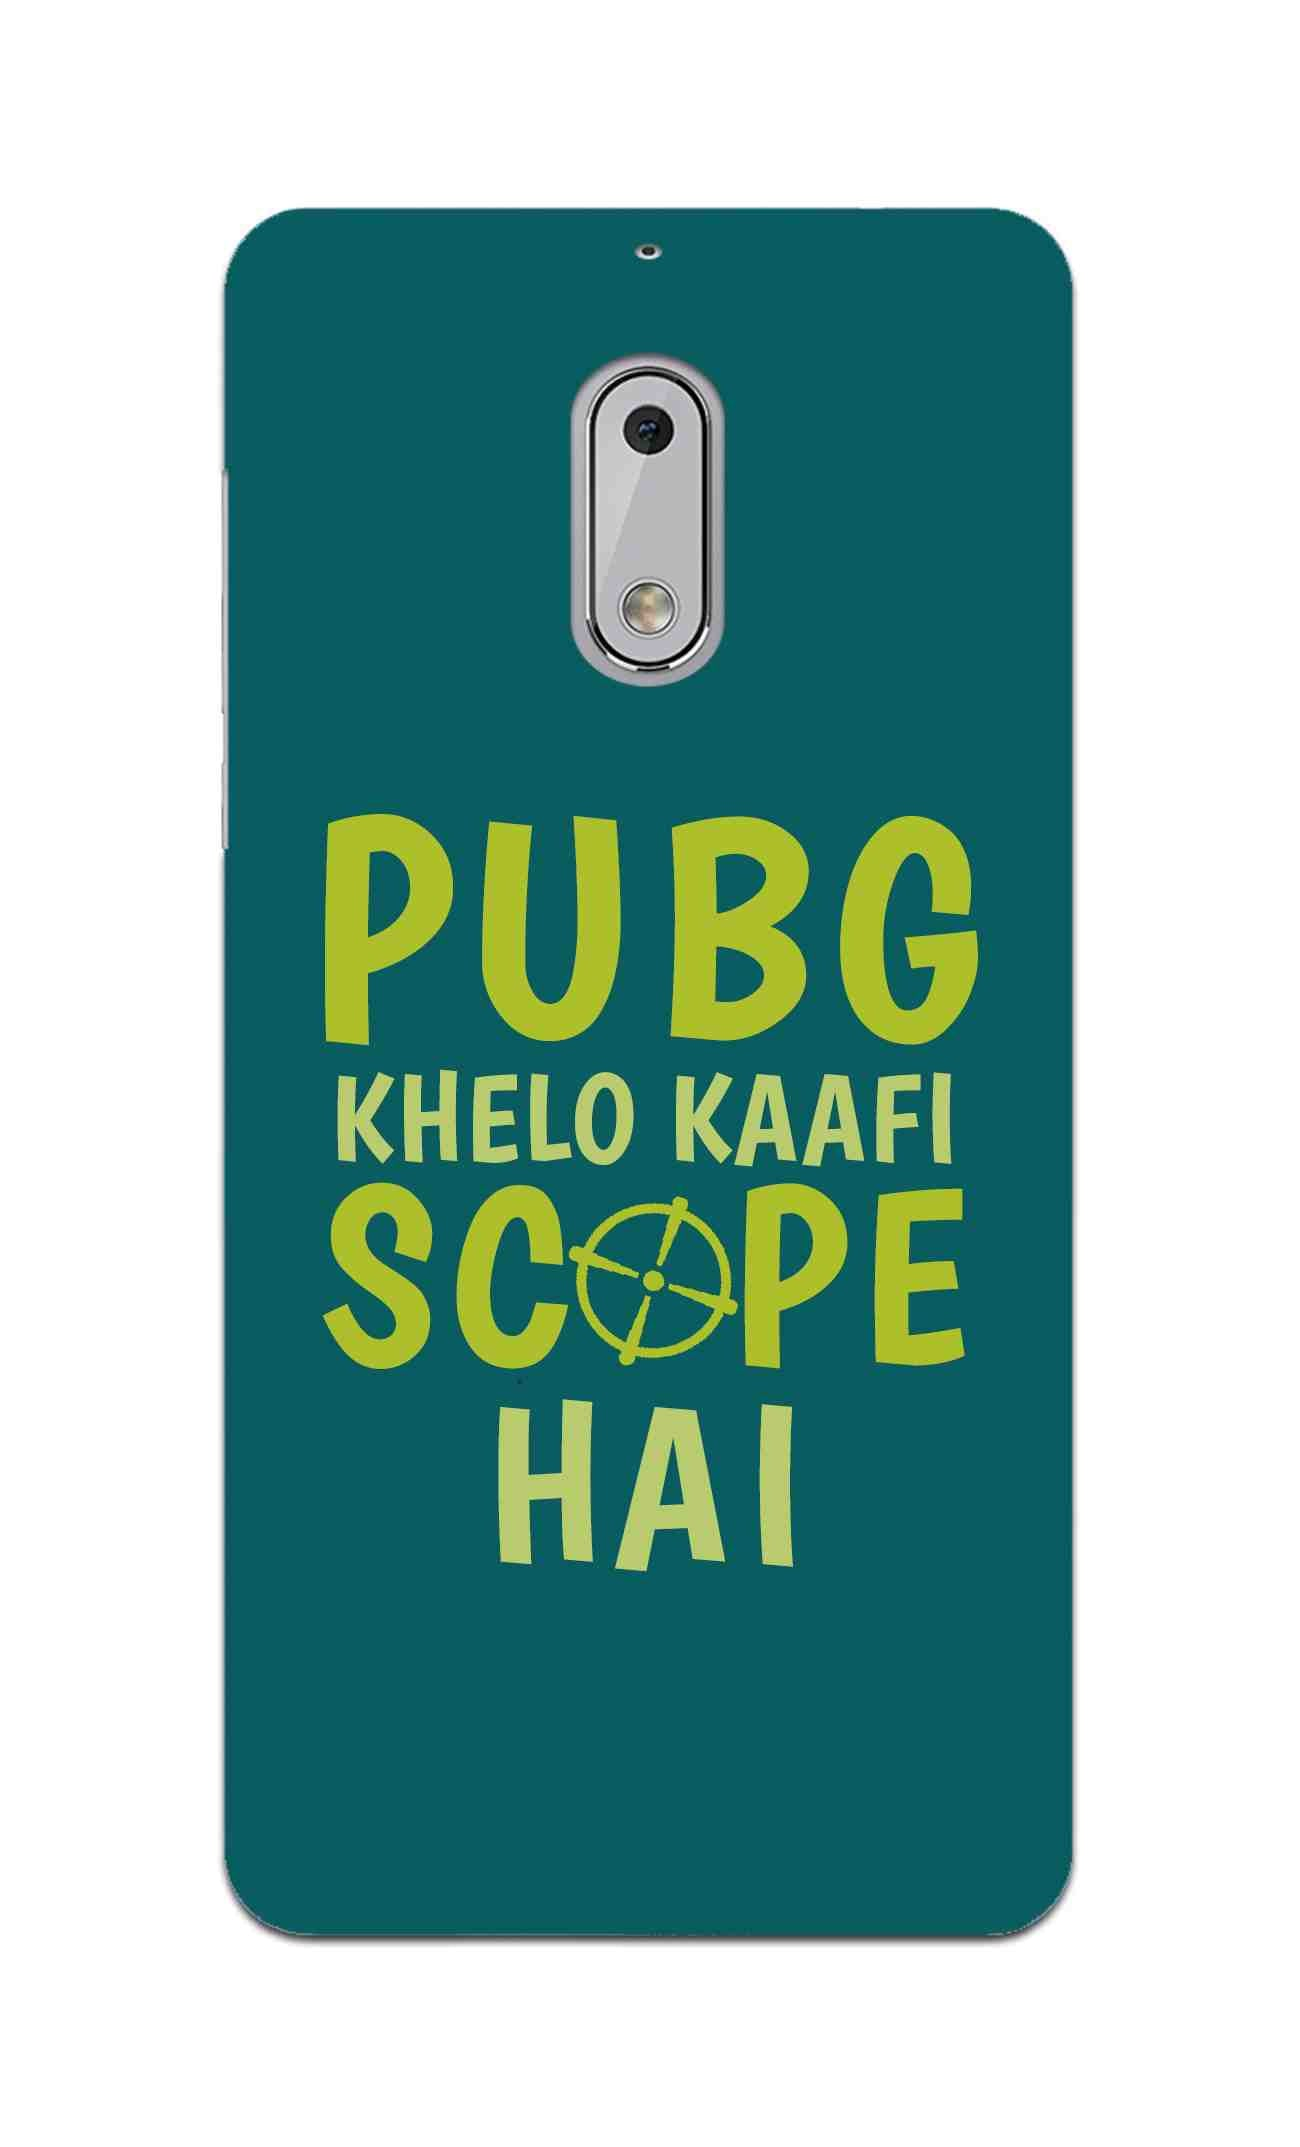 Pubg Khelo Kaafi Scope Hai Game Lovers Nokia 6 Mobile Cover Case